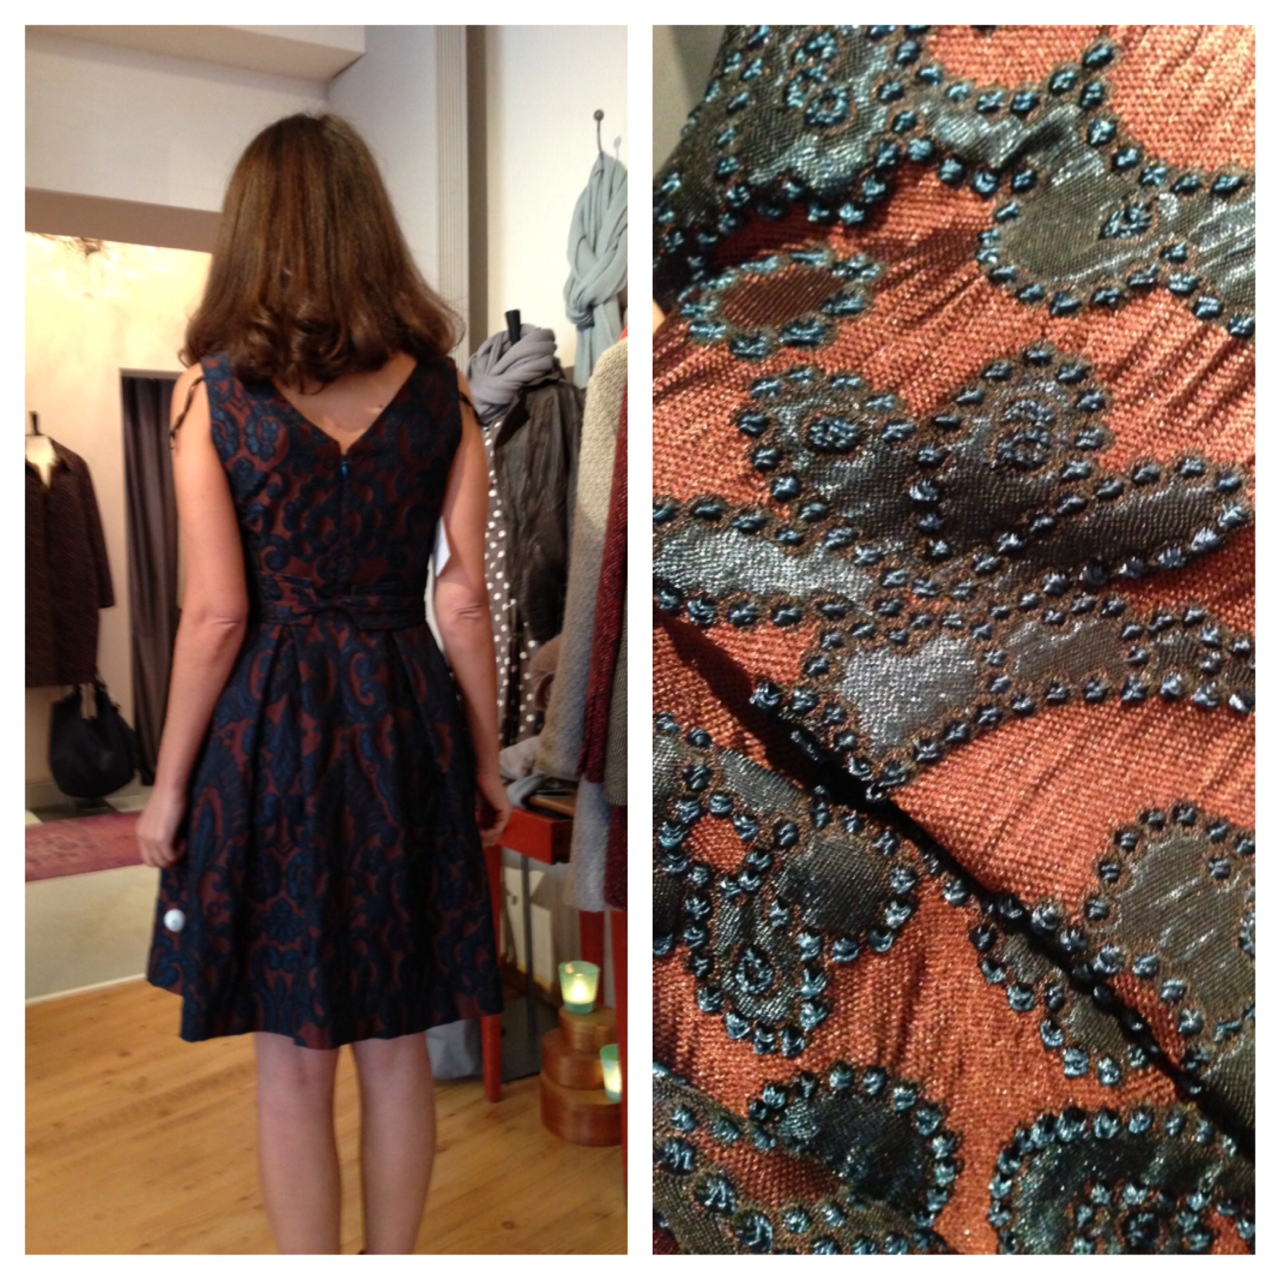 Ellen Eiseman Brocade Dress 2013